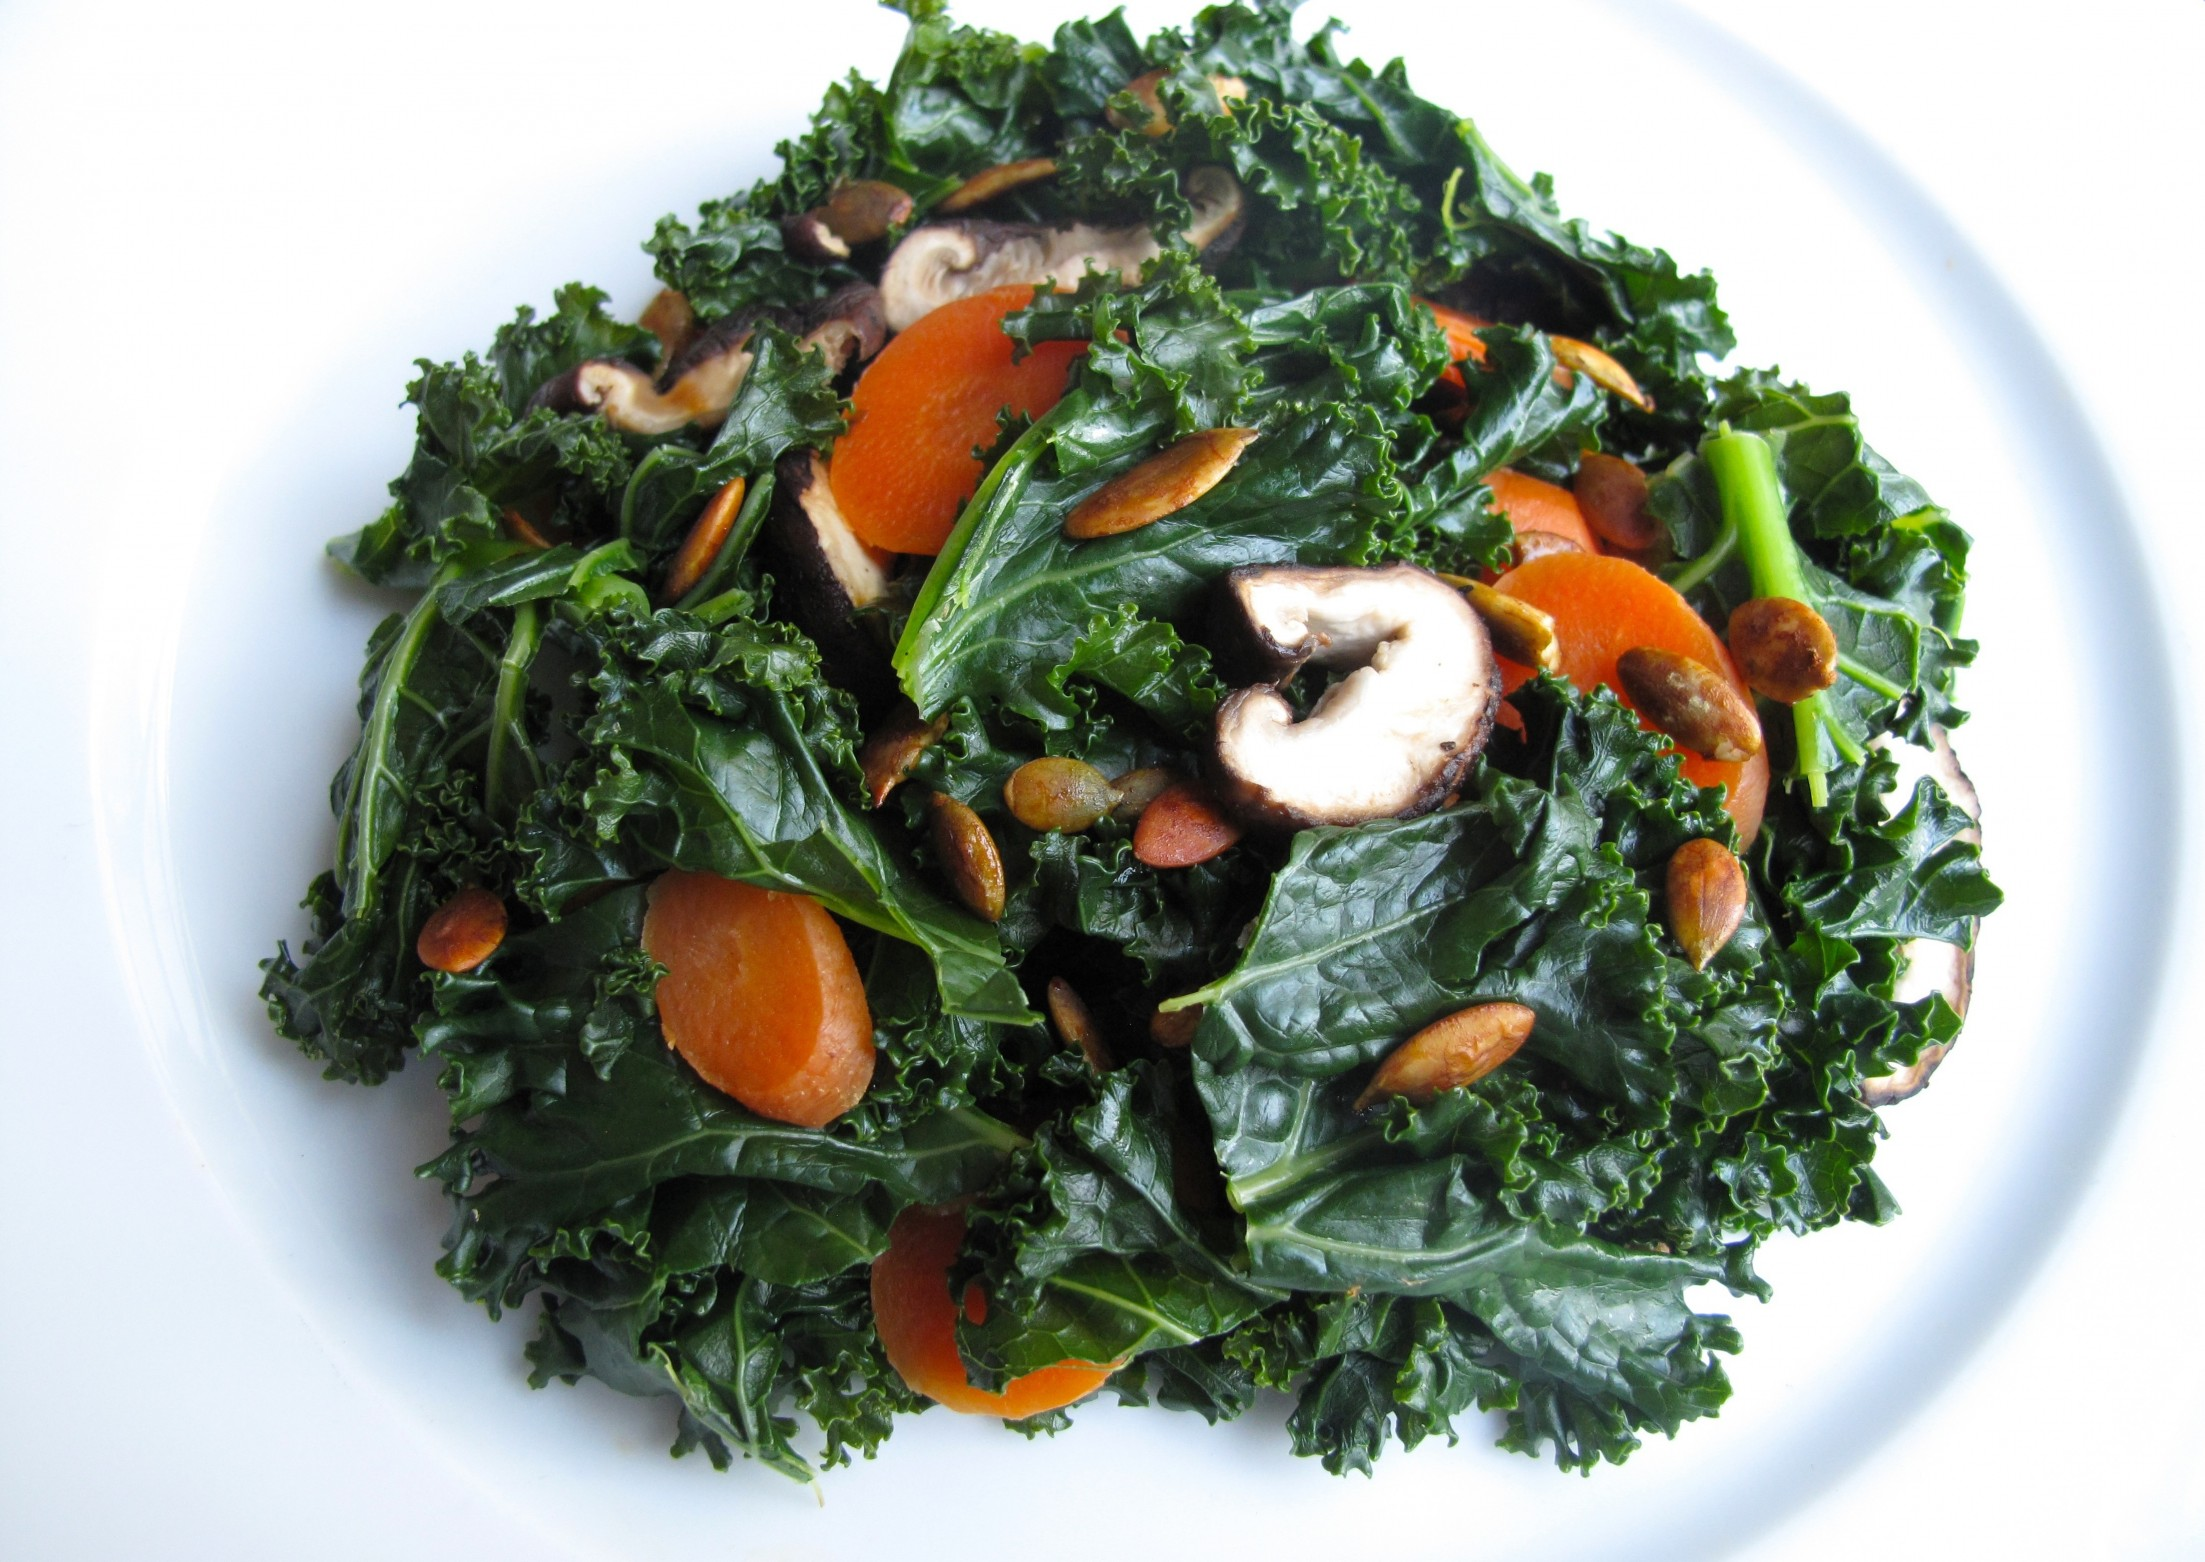 Steamed Kale Carrots Shiitake Mushrooms e1331333522546 Butternut Squash, Kale, and Sunchoke Salad